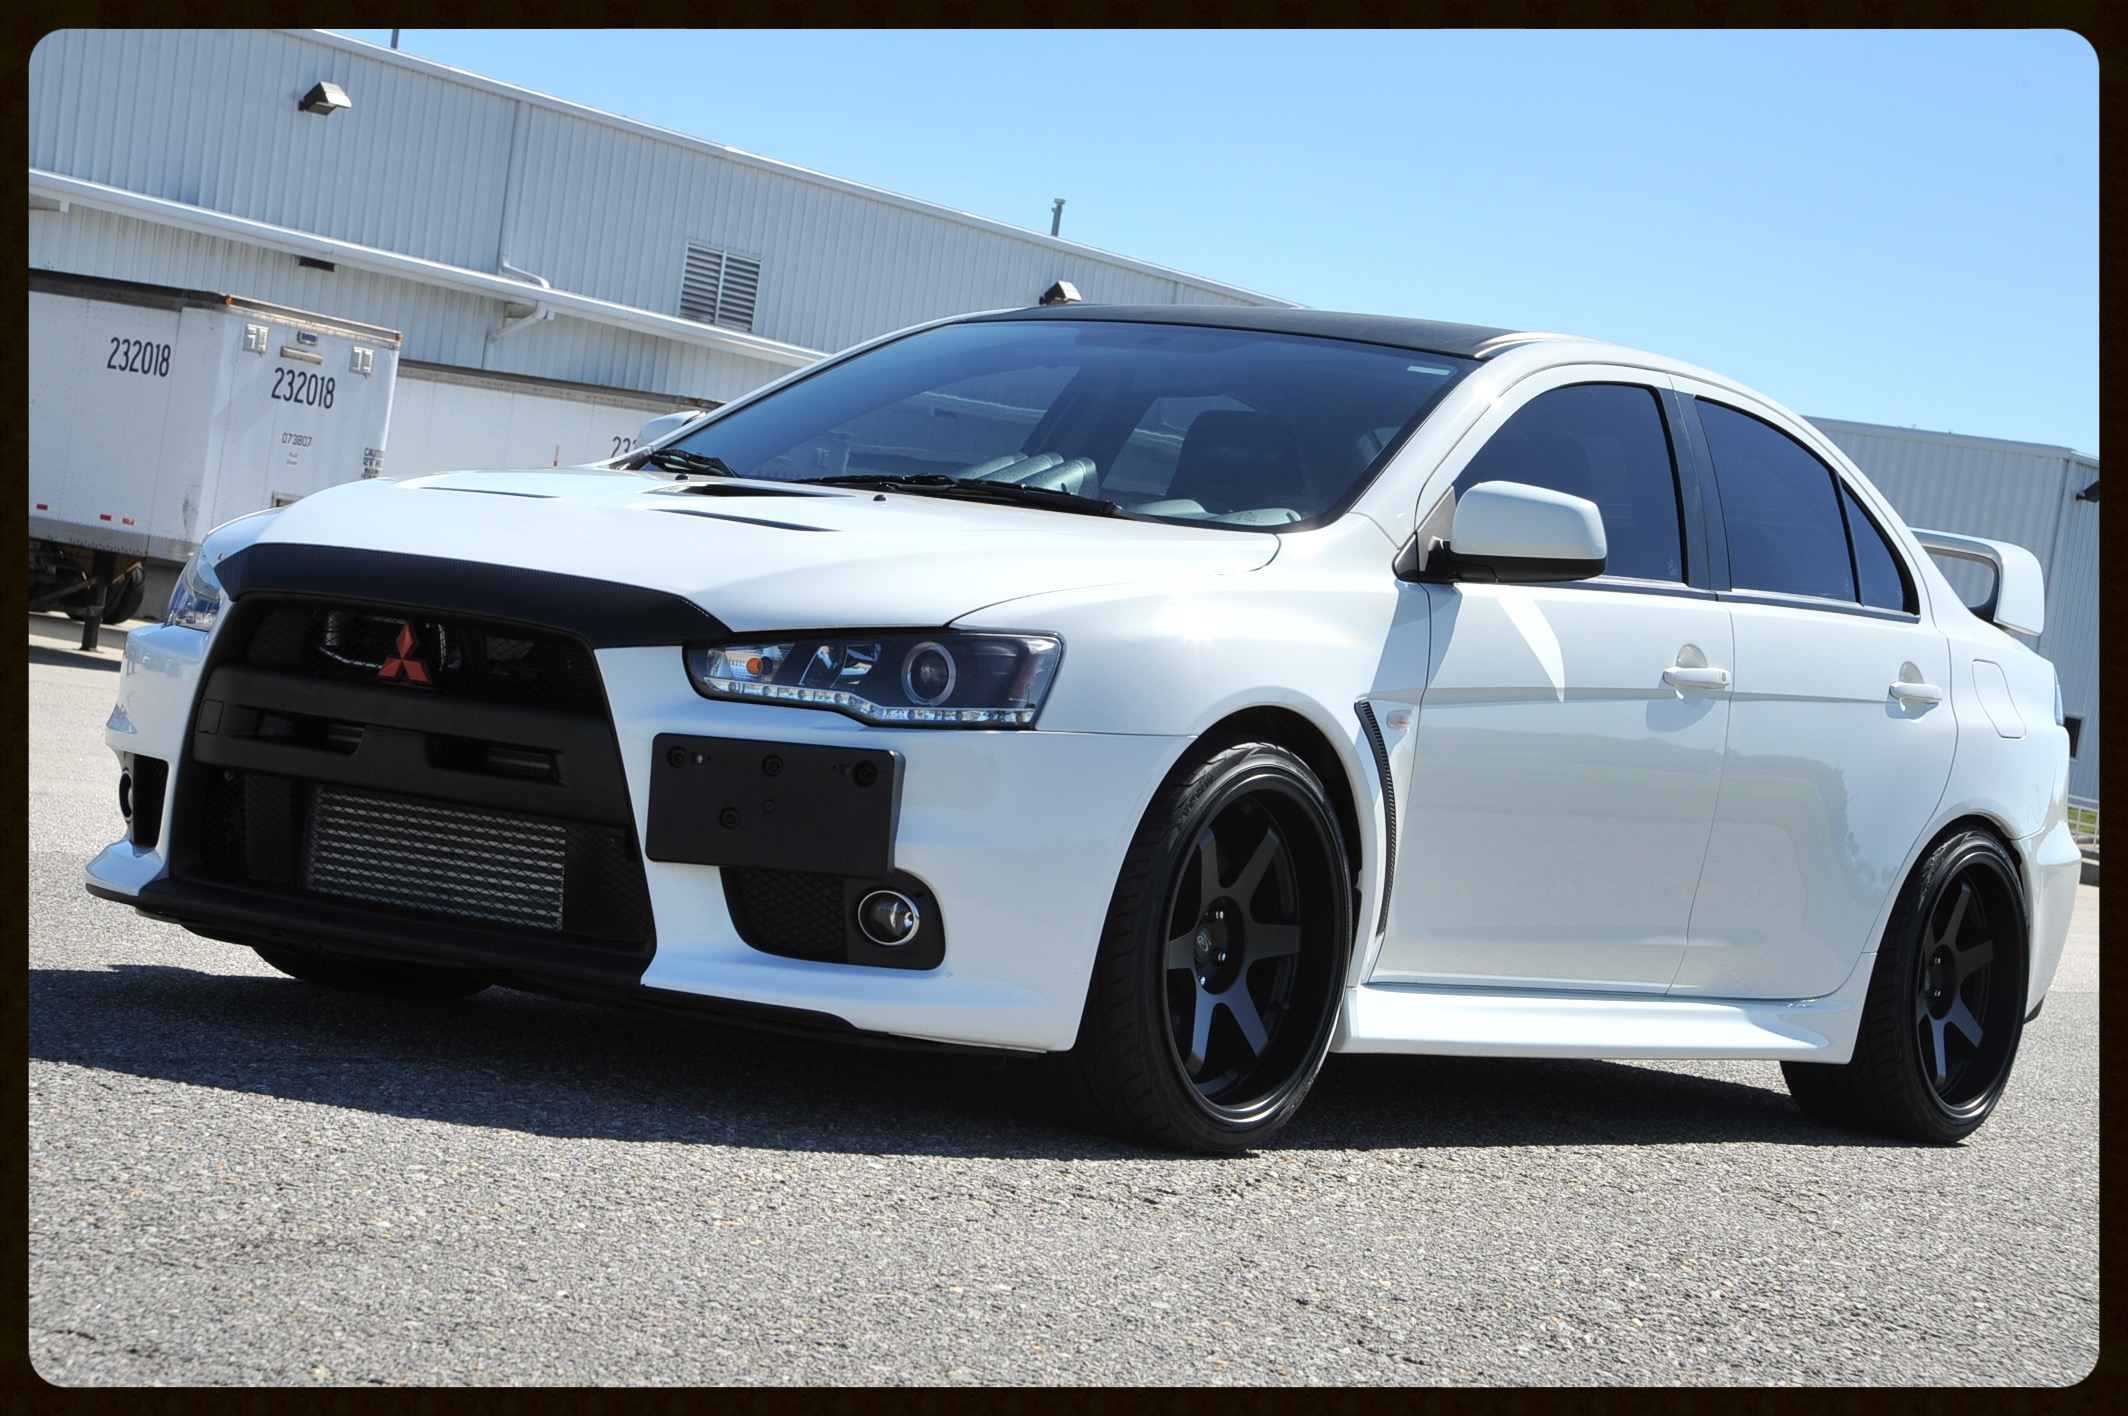 2012 Evo...Built...Larger Turbo...Intercooler...and MUCH MORE....Only 7K Miles...New GTR Trade...Click to View Photos